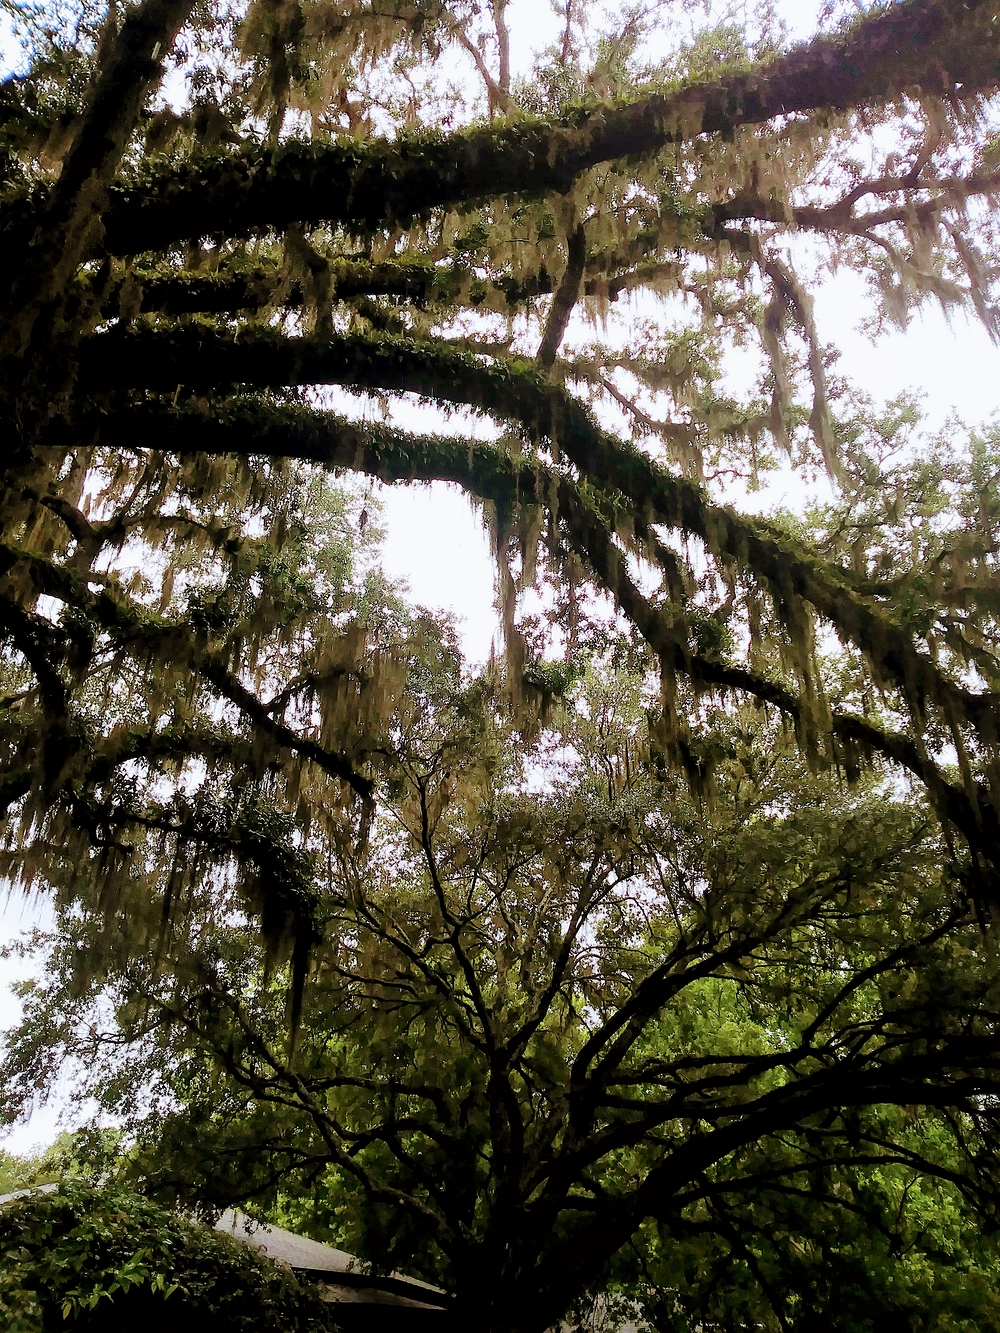 Branches with Spanish Moss II